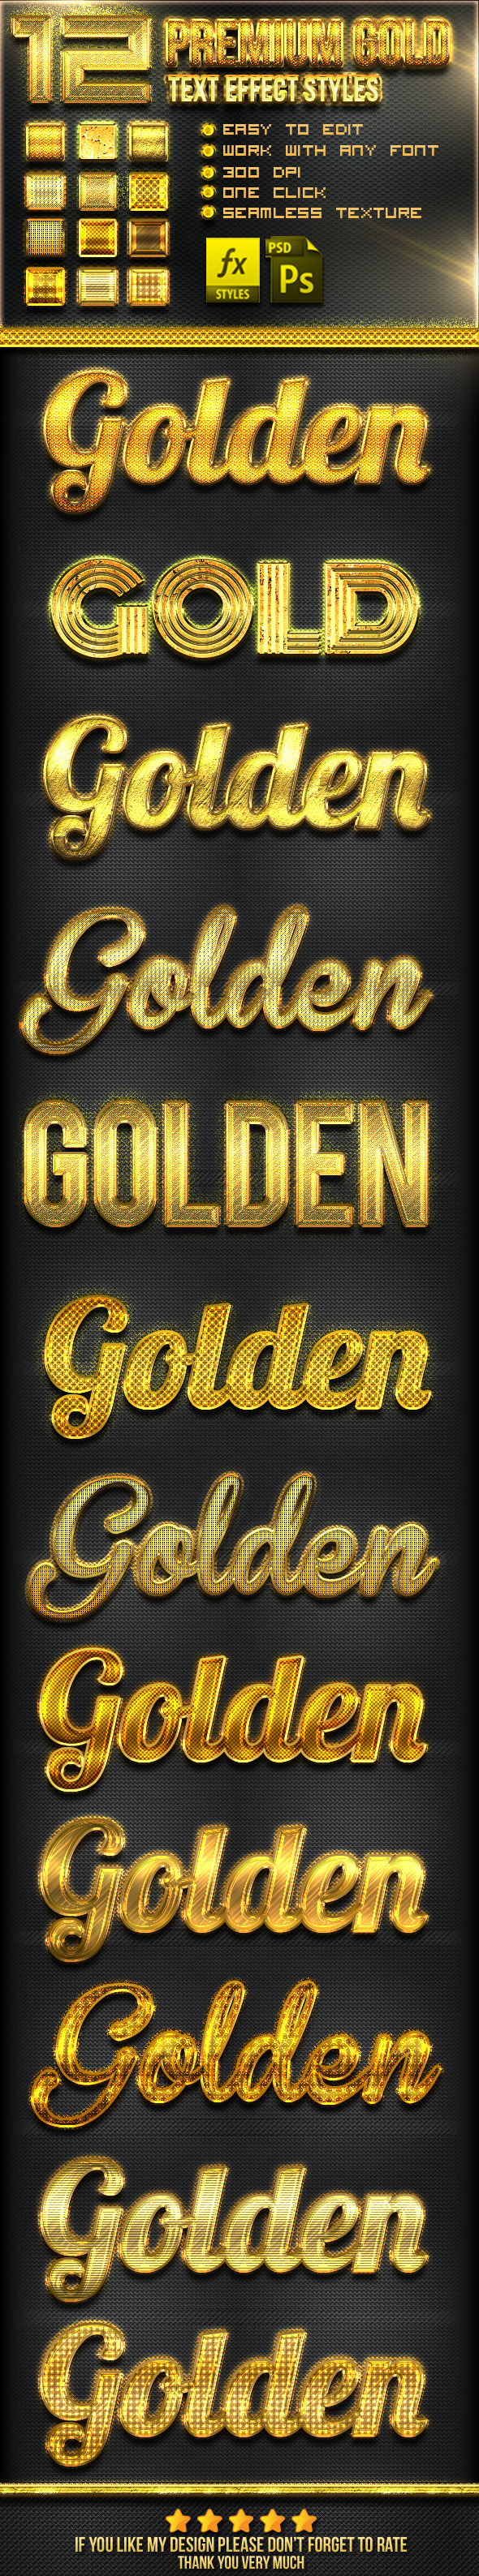 12 Gold Photoshop Text Effect Styles - Text Effects Styles